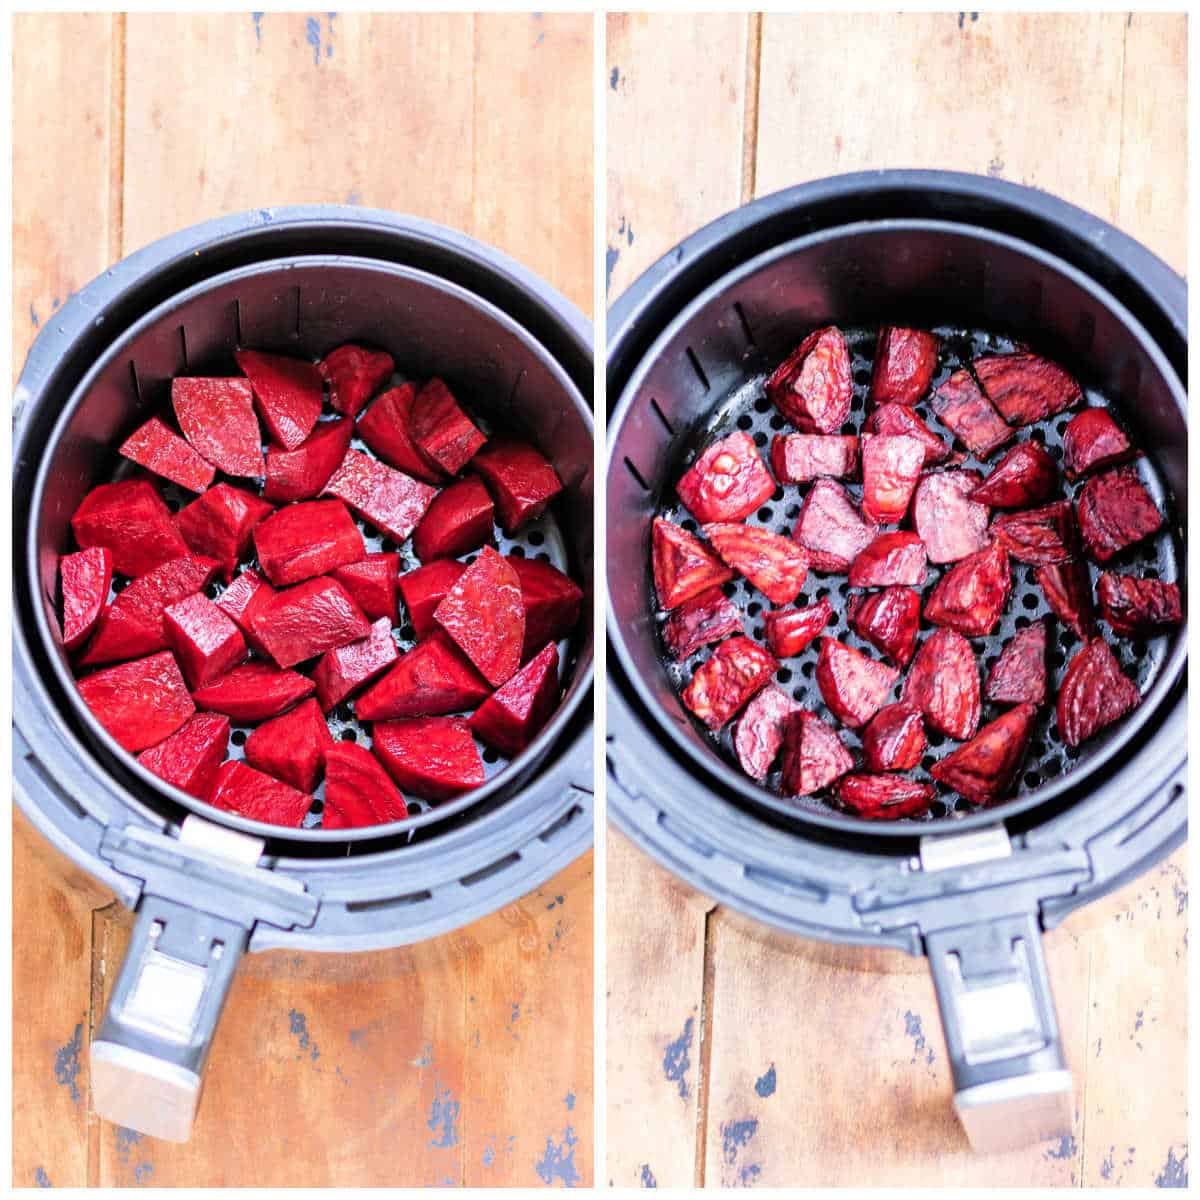 Collage: 1 raw beets in the air fryer, 2 cooked beets in the air fryer.